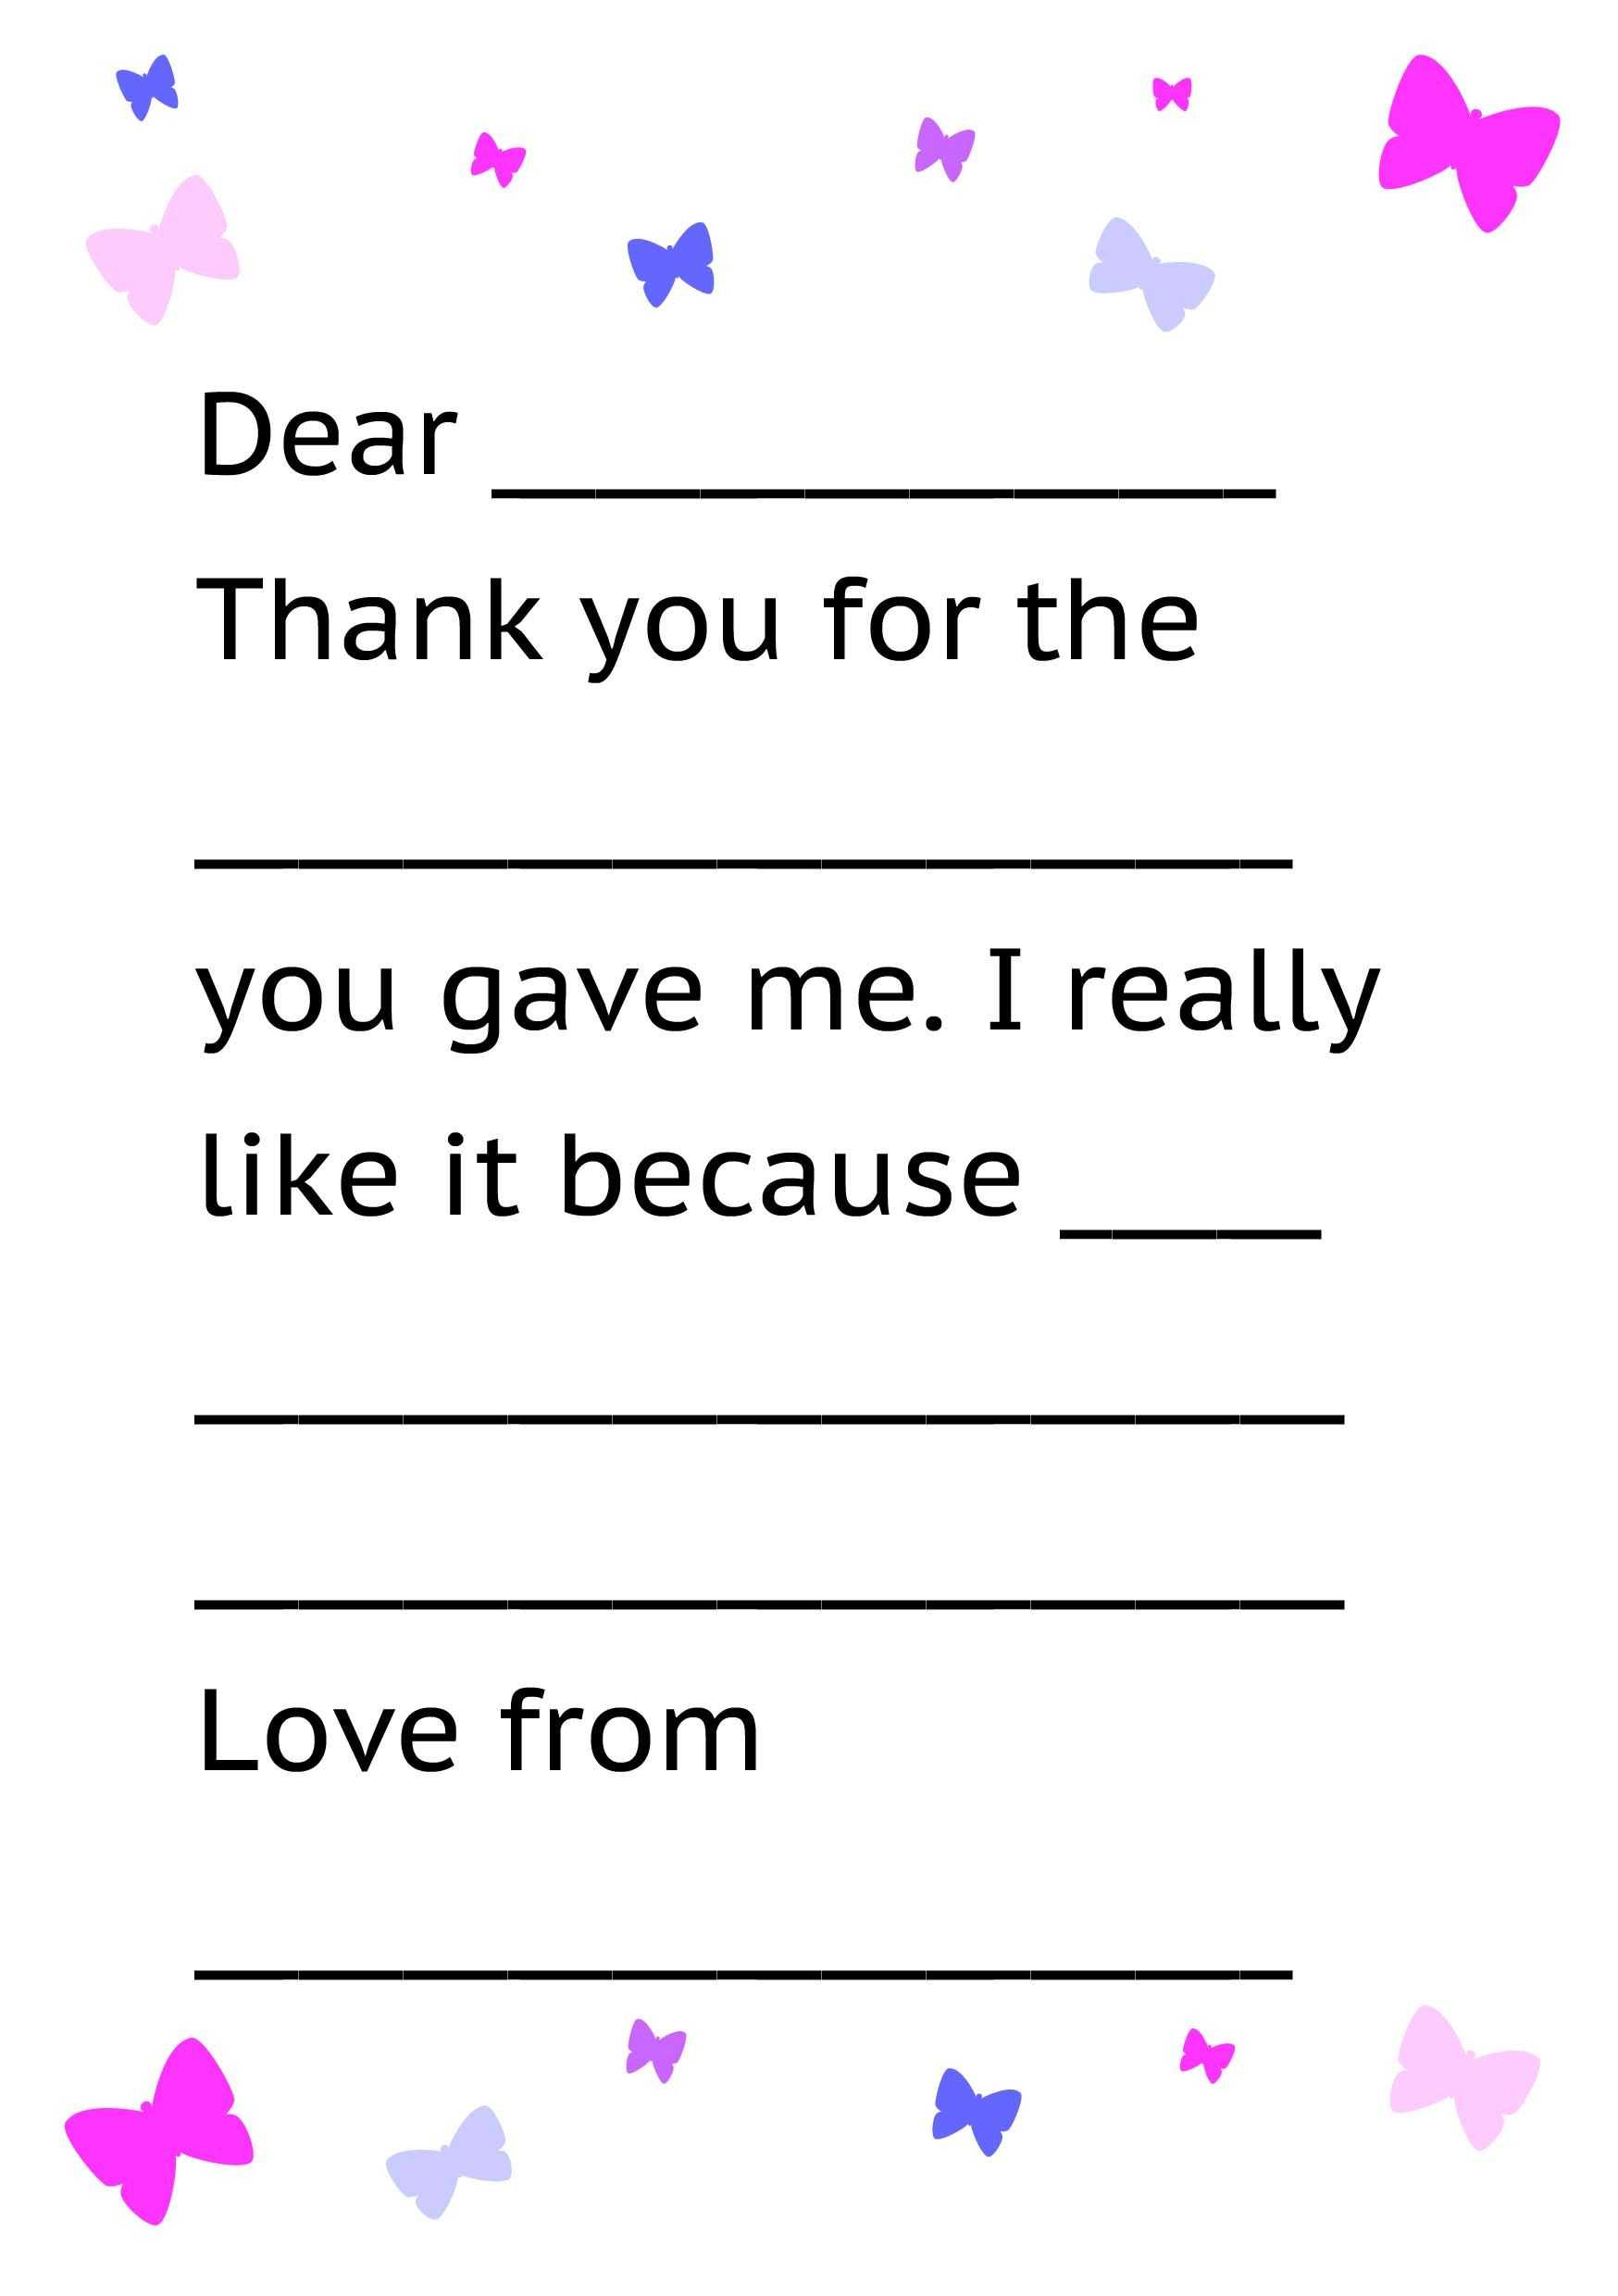 Printable Thank You Card Template For Kids | Thank You Cards Within Thank You Note Card Template